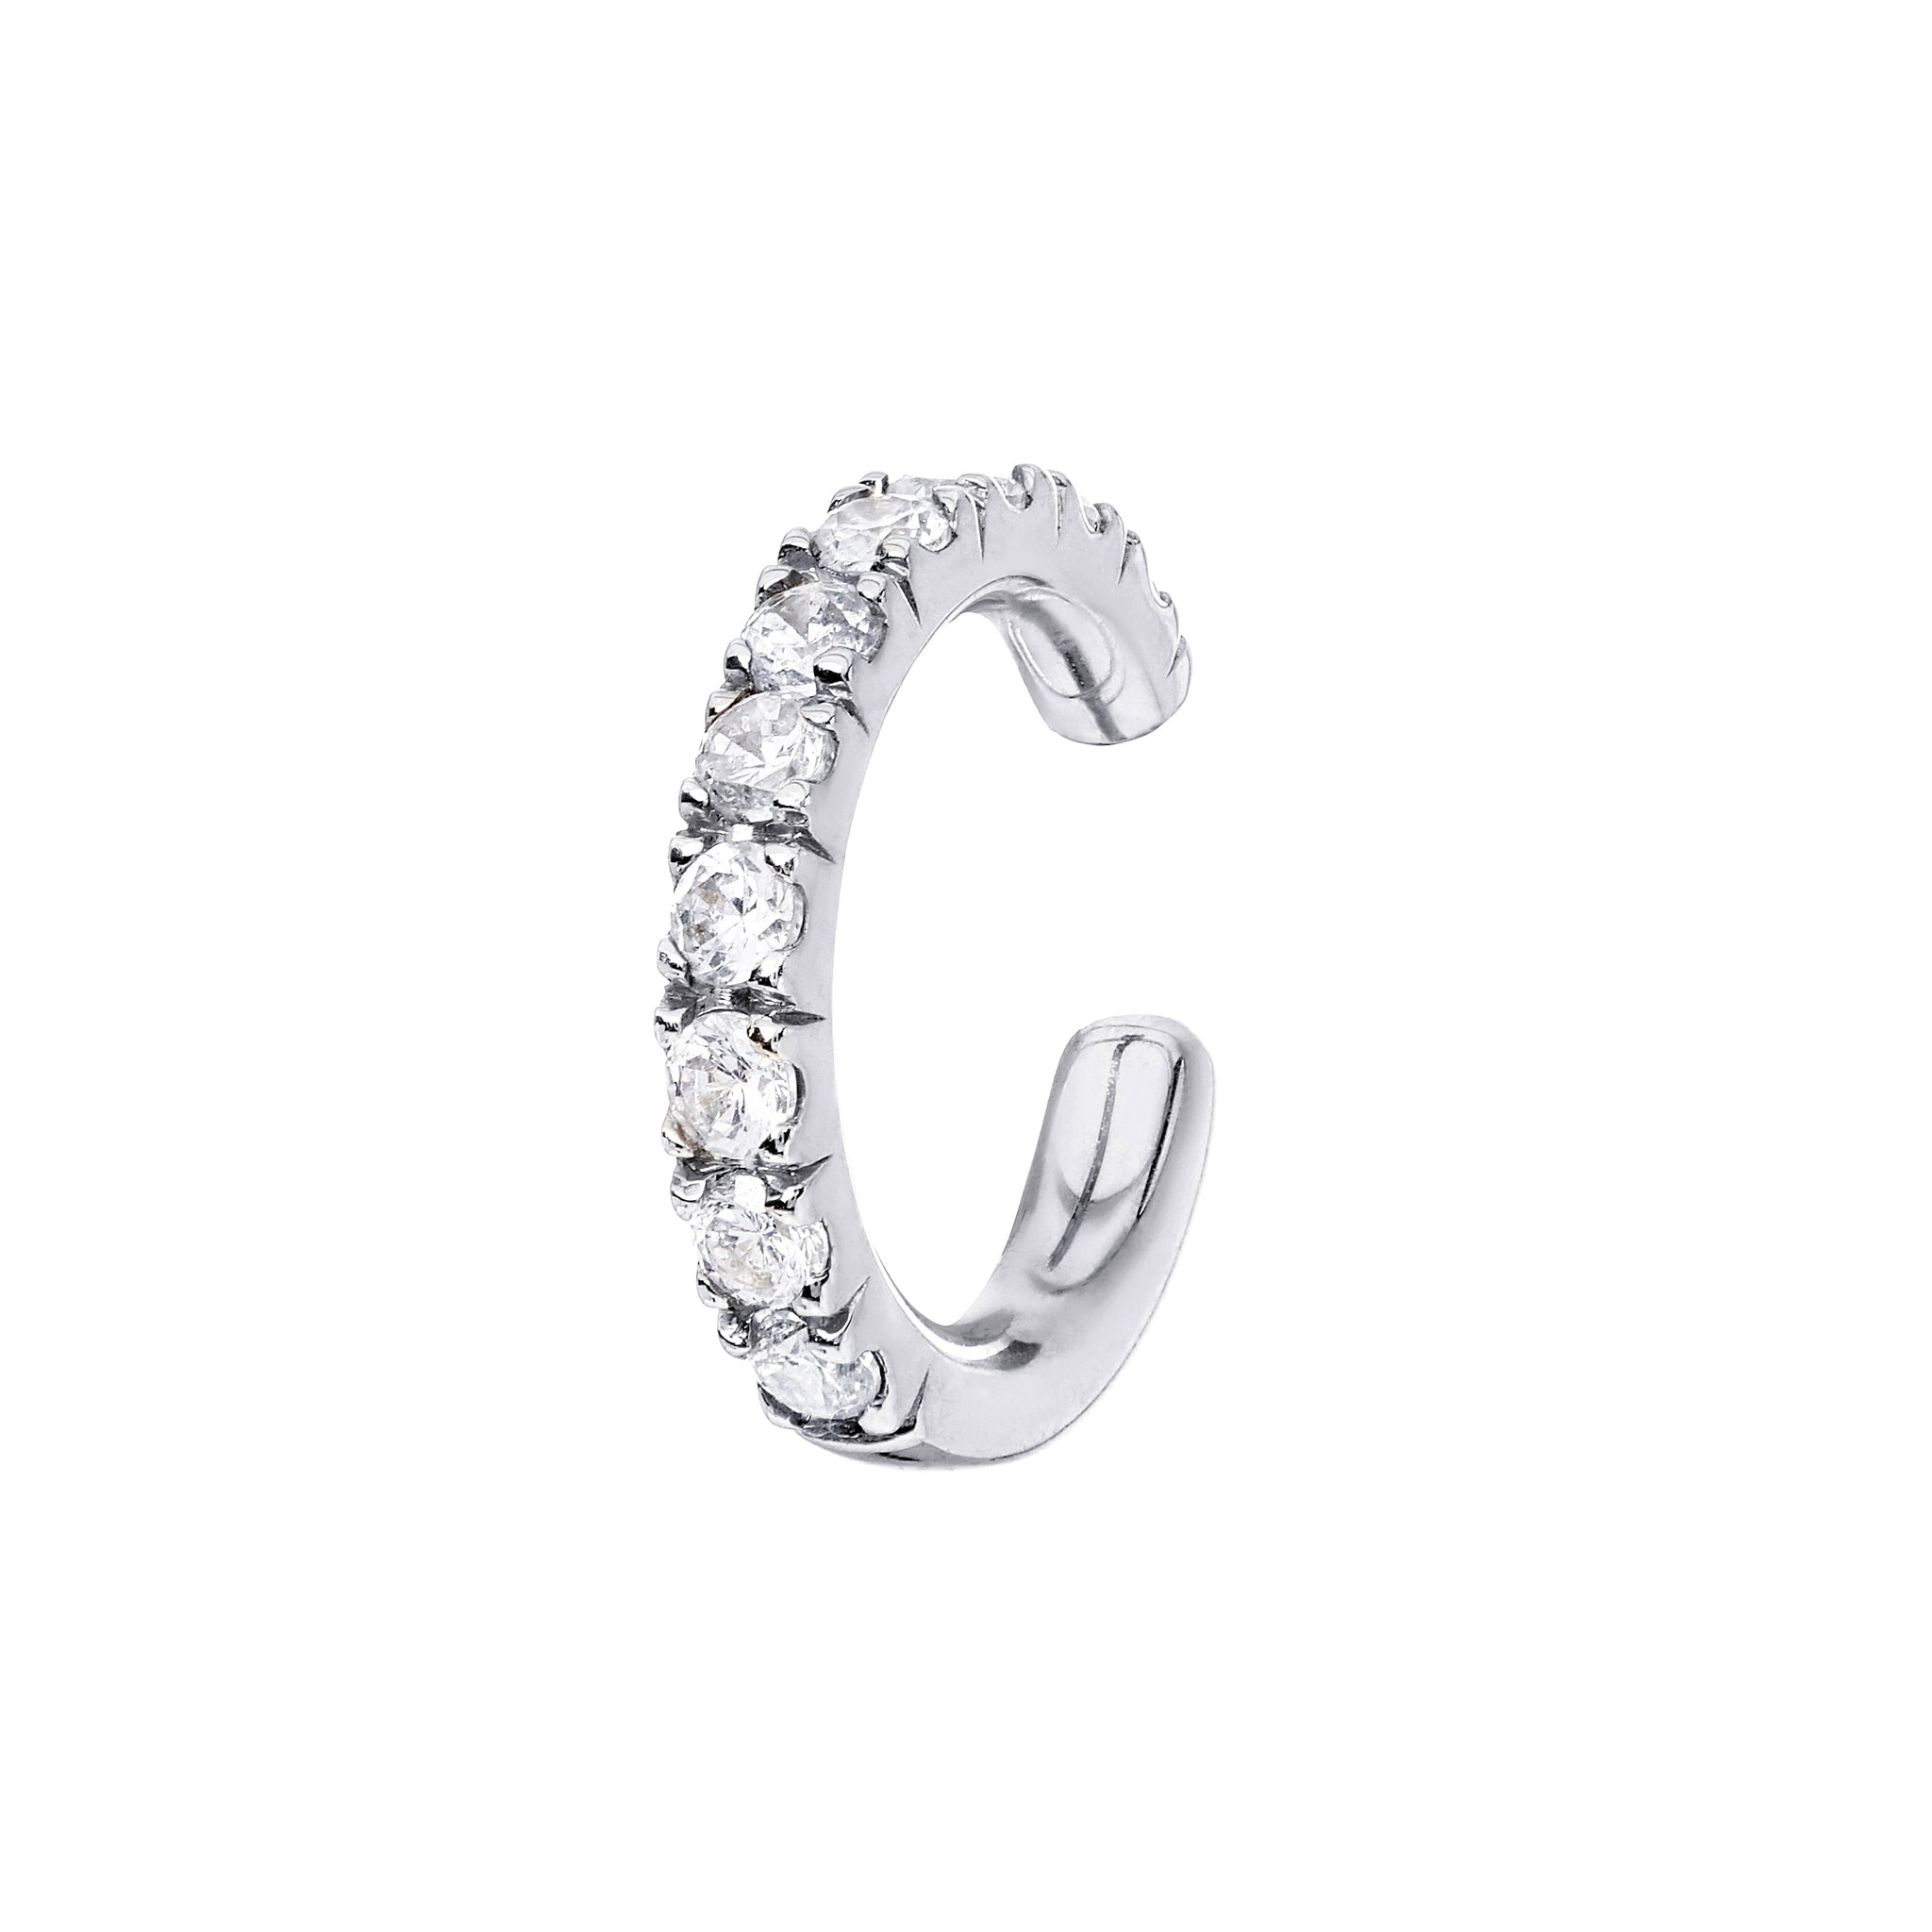 AYA White Gold Diamond Cuff